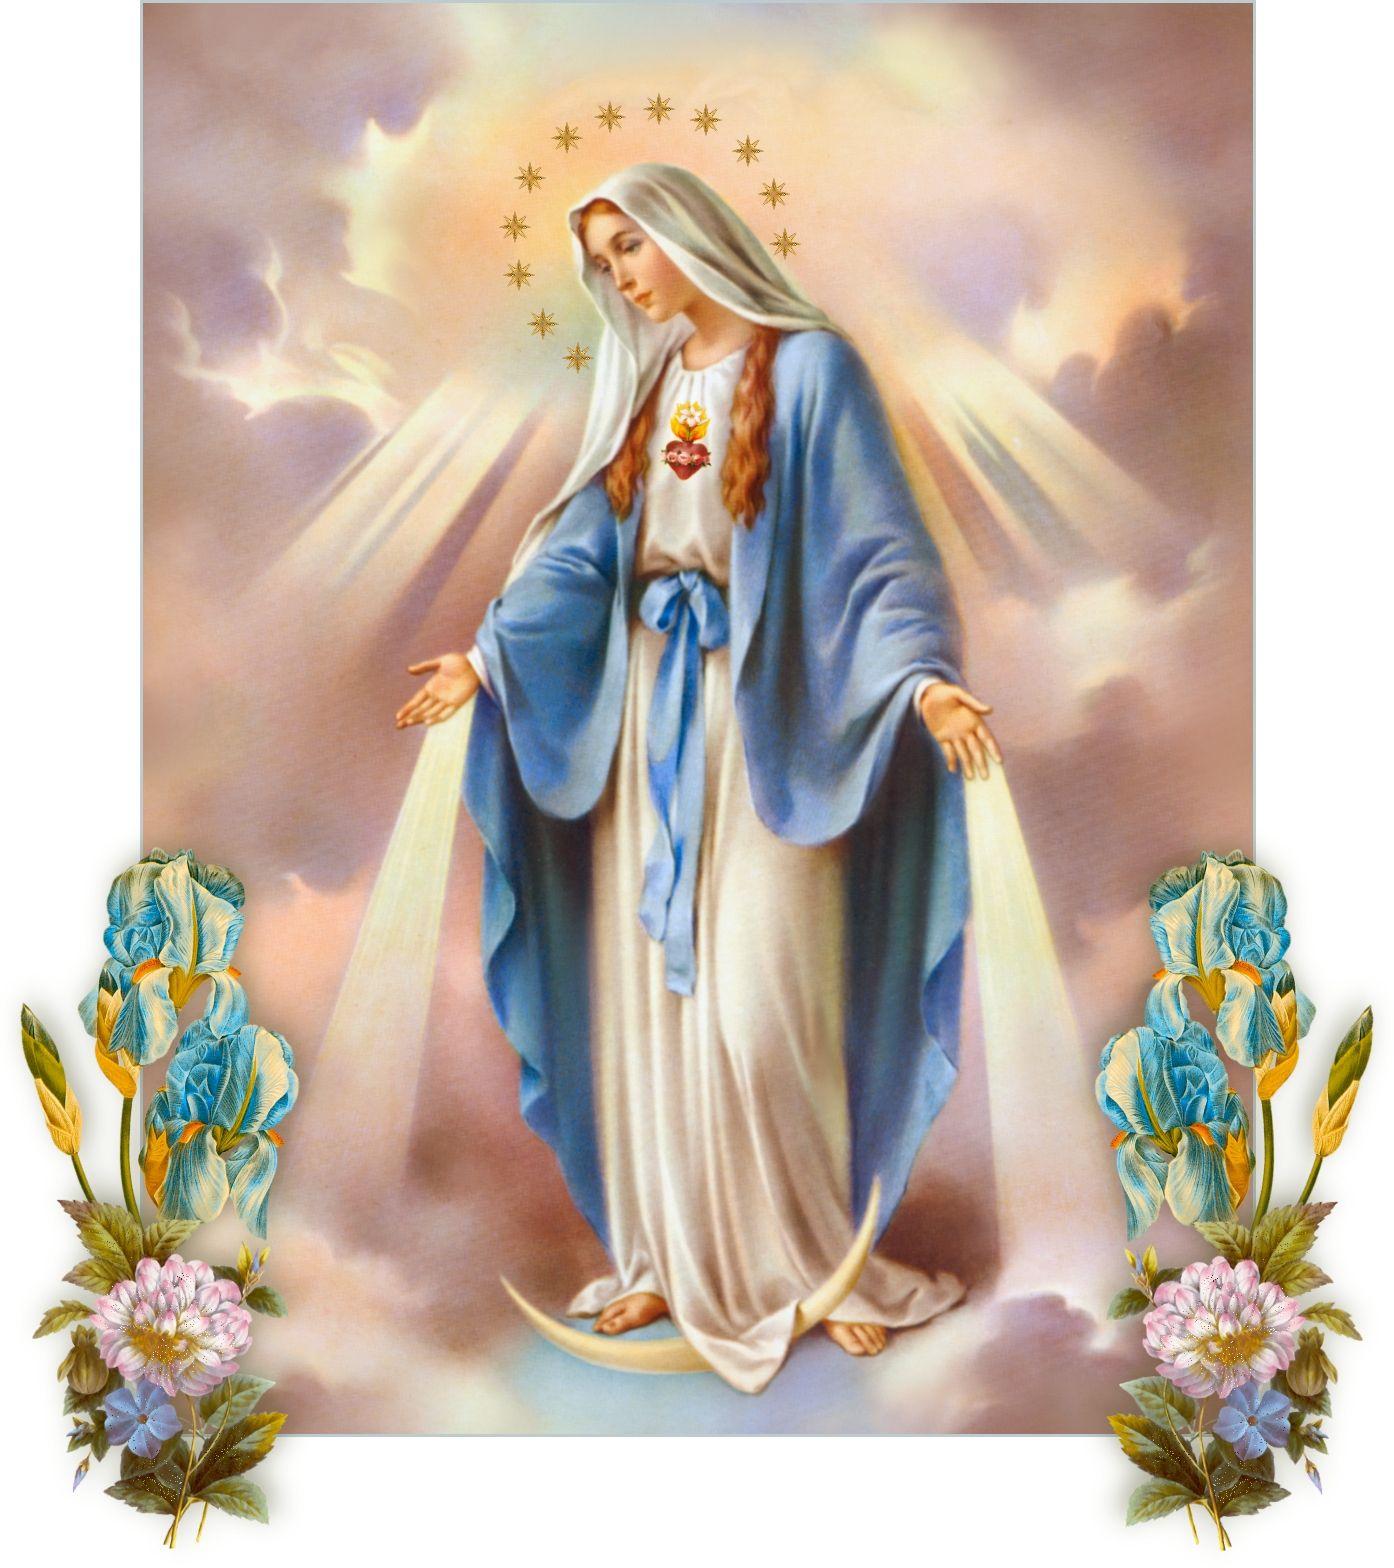 Picture of the blessed virgin